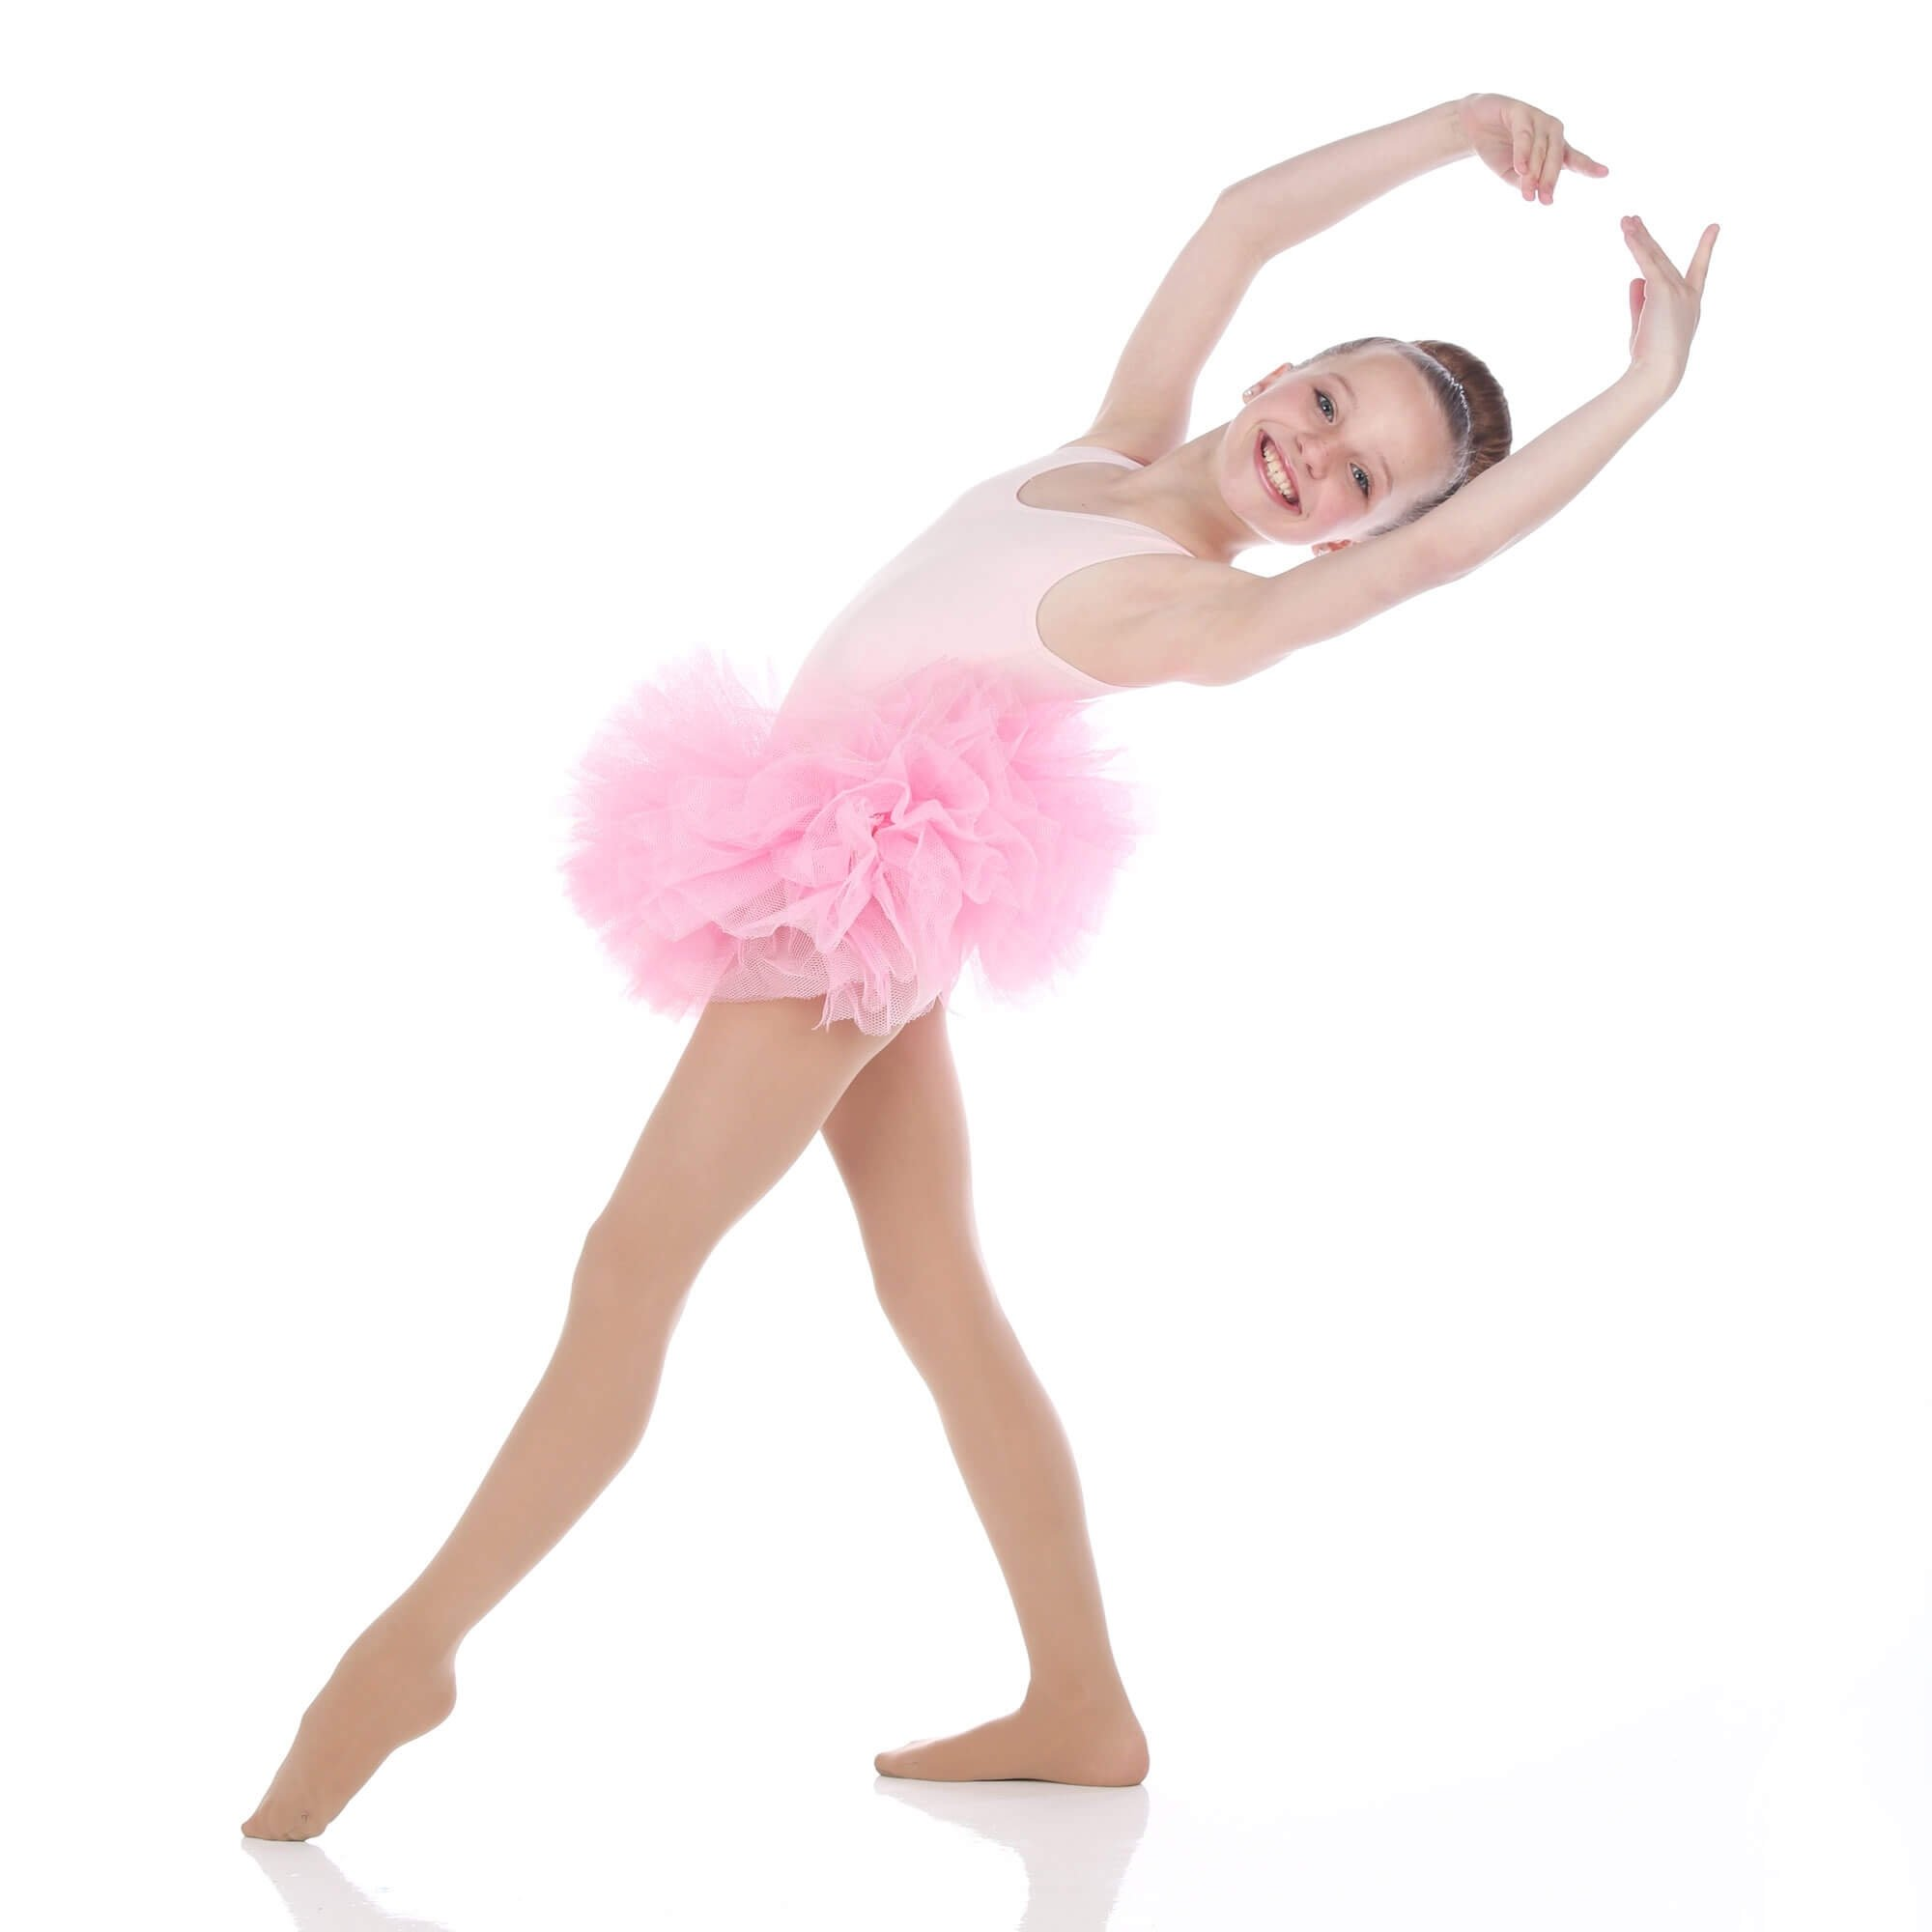 Danzcue Girls Ballet Tulle Tutu Skirt - Click Image to Close